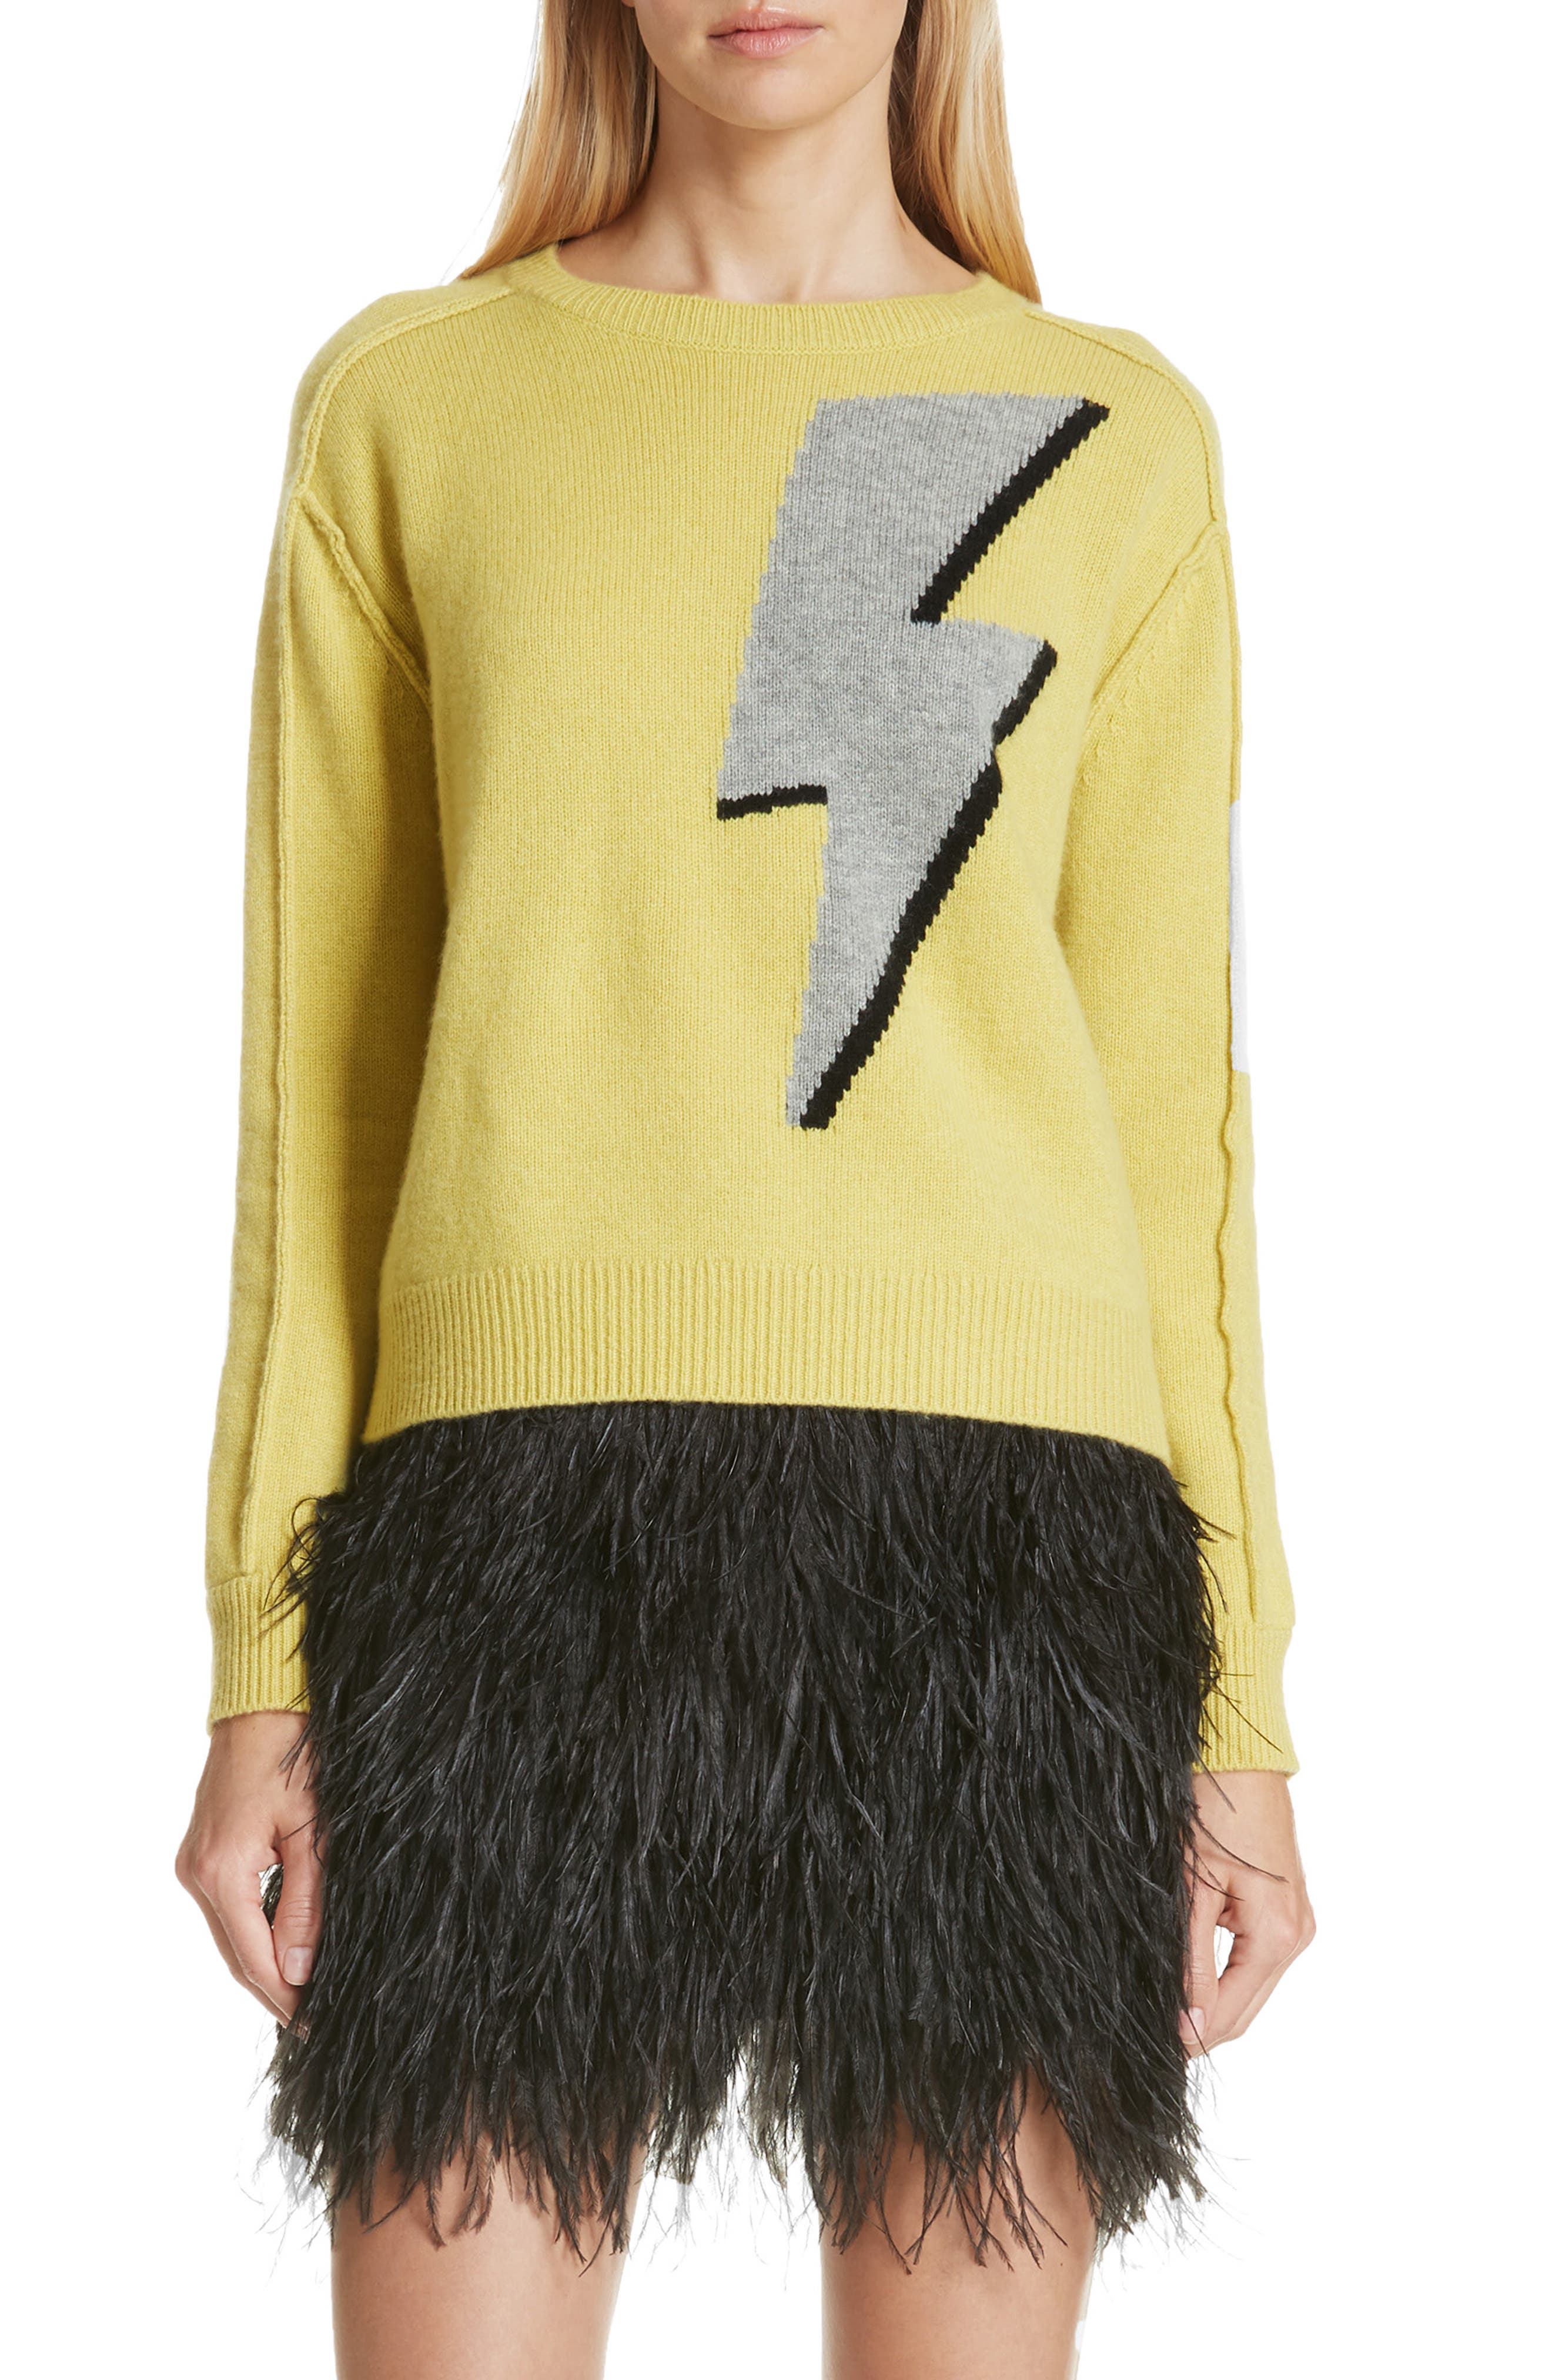 Lightning Bolt Wool & Cashmere Sweater,                             Main thumbnail 1, color,                             YELLOW/ GREY